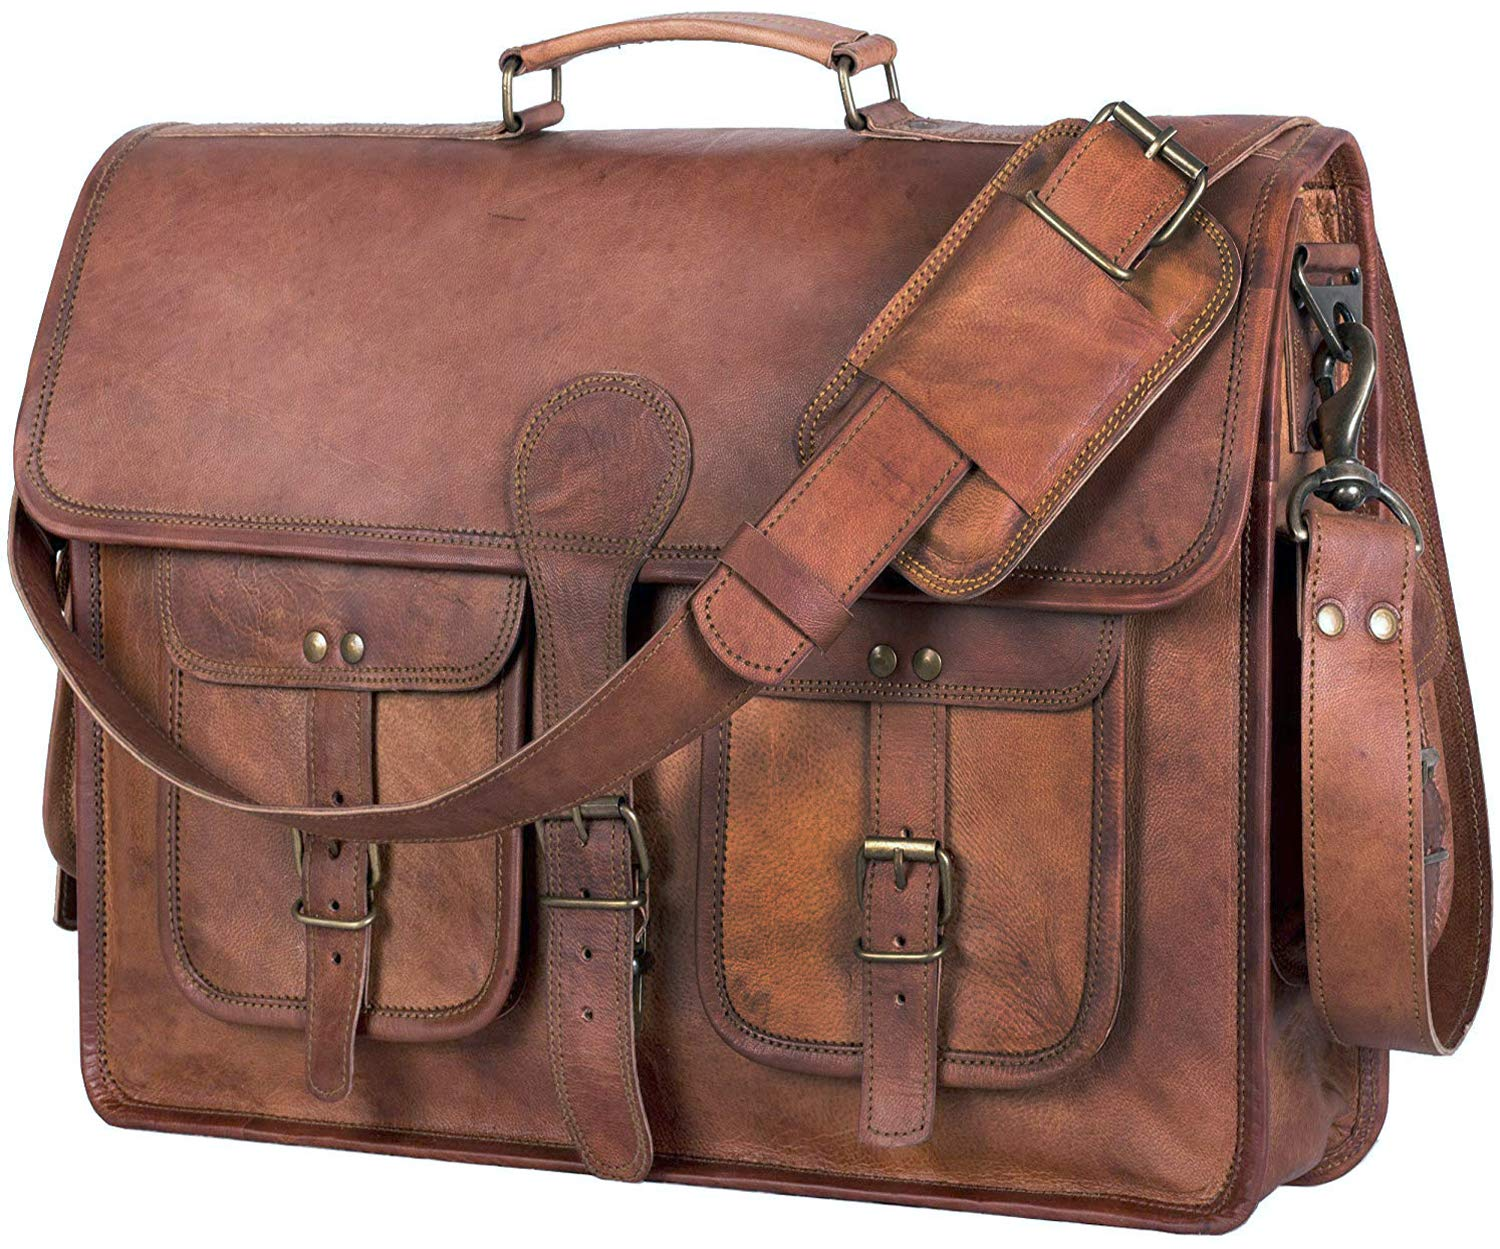 Leather Briefcase Laptop bag 18 inch Handmade Messenger Bags Best Satchel by KPL by Komal's Passion Leather